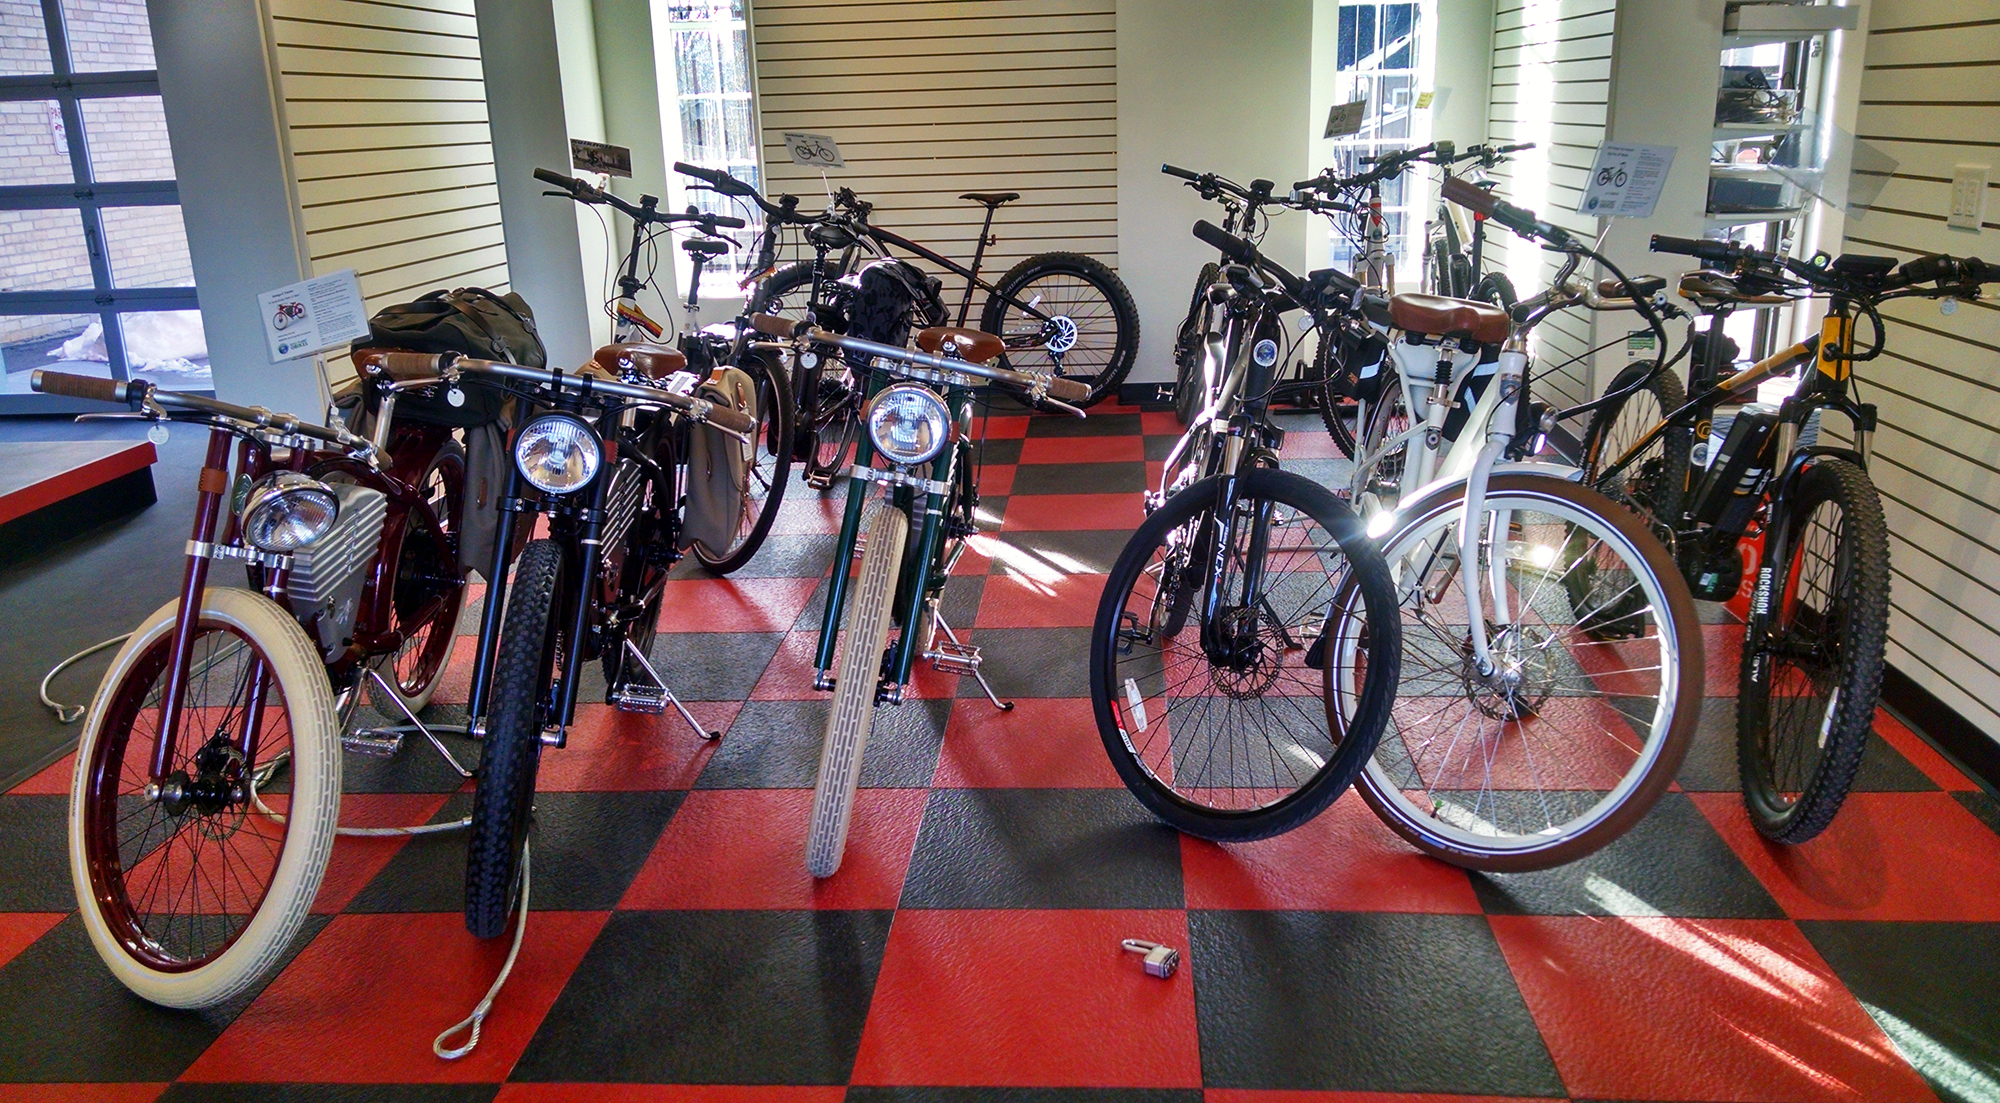 Bike Sales In Denver An electric bike retailer is